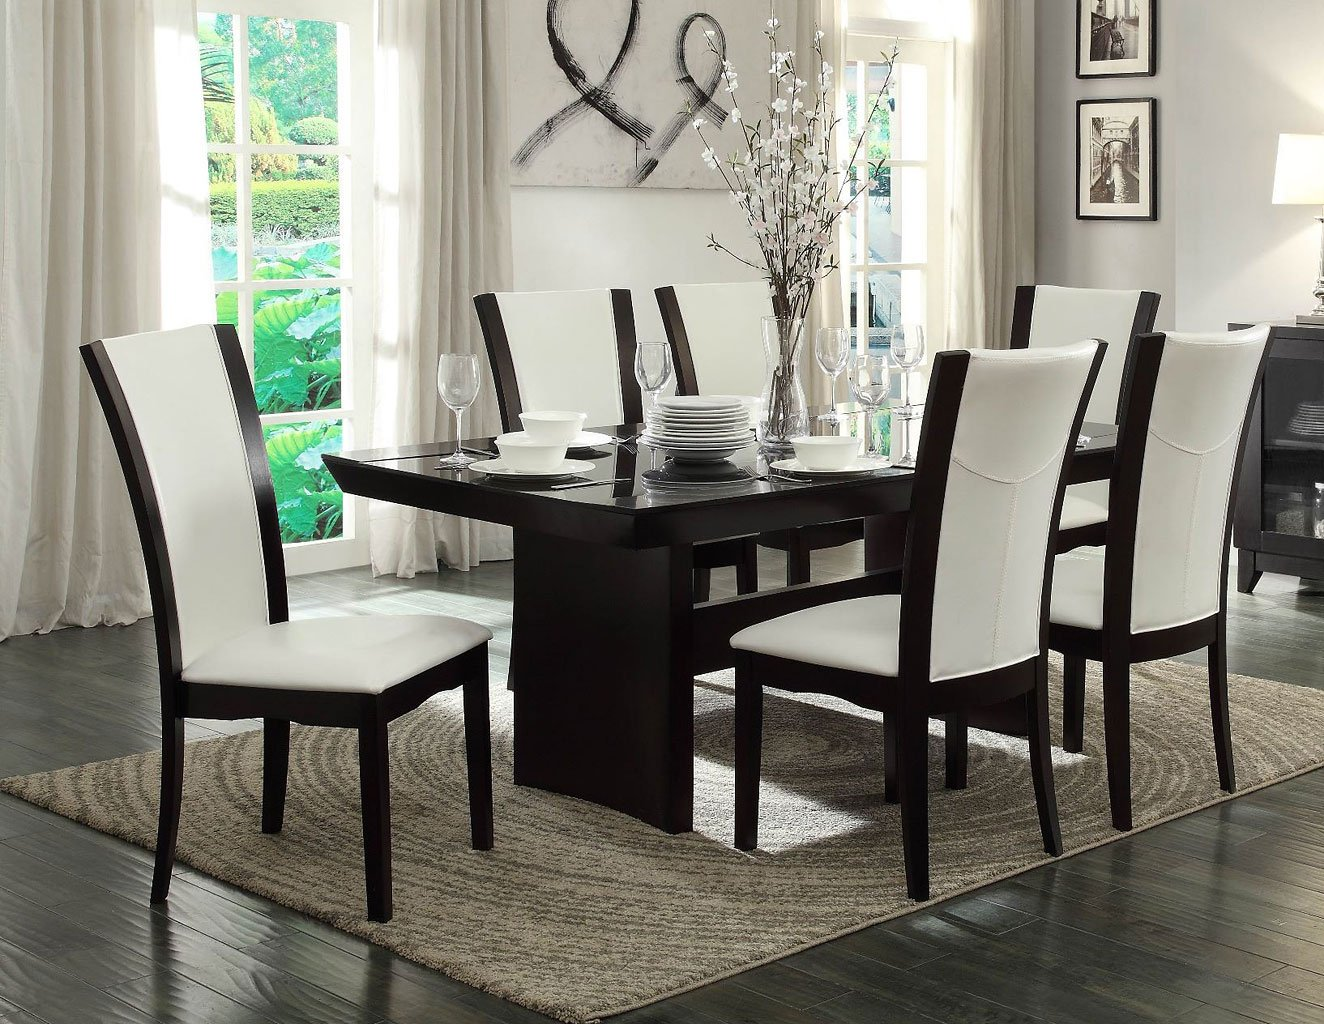 Daisy Glass Insert Dining Room Set w/ White Chairs